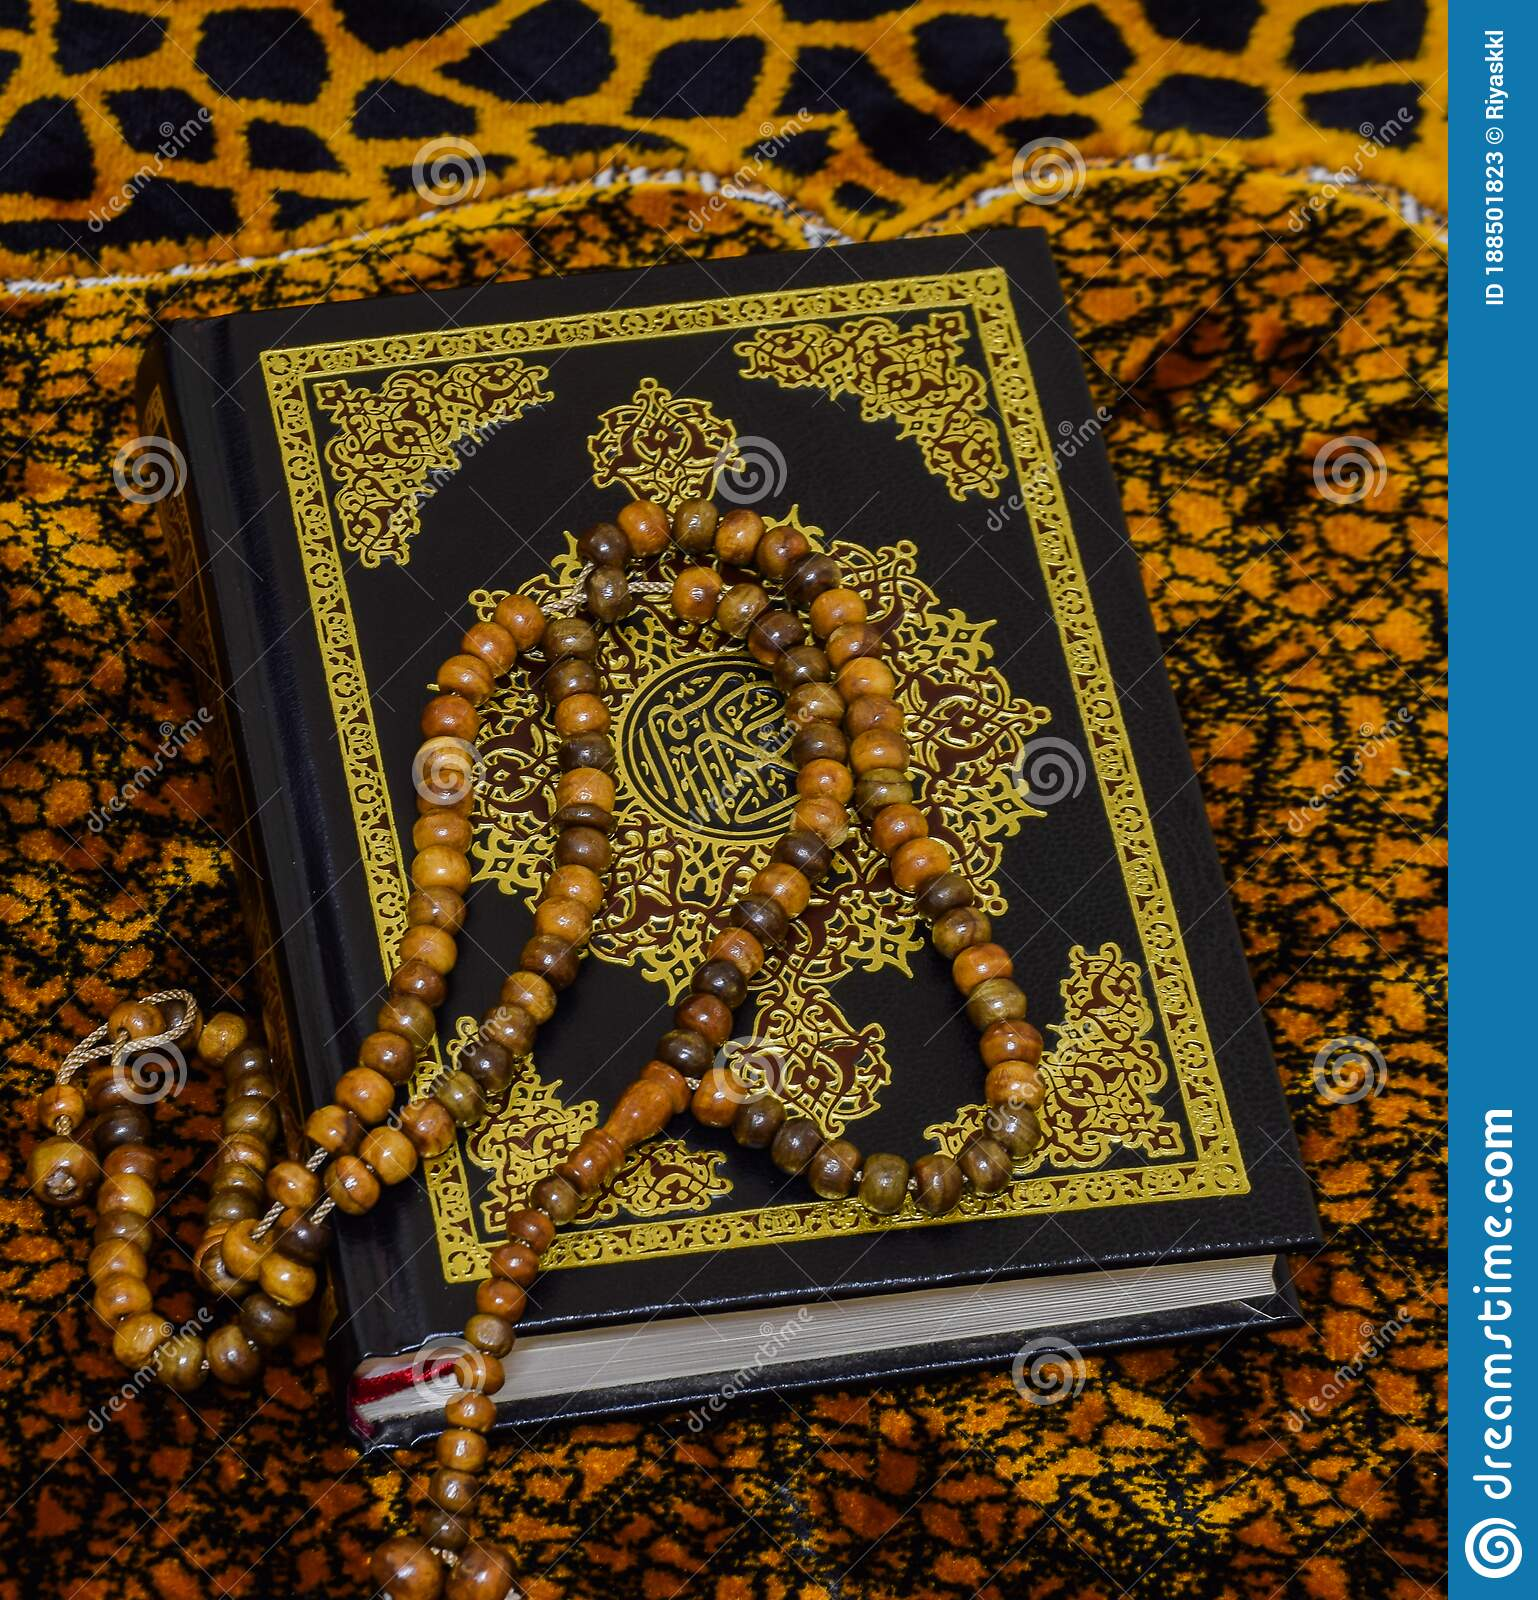 Islamic images nice 40 Most